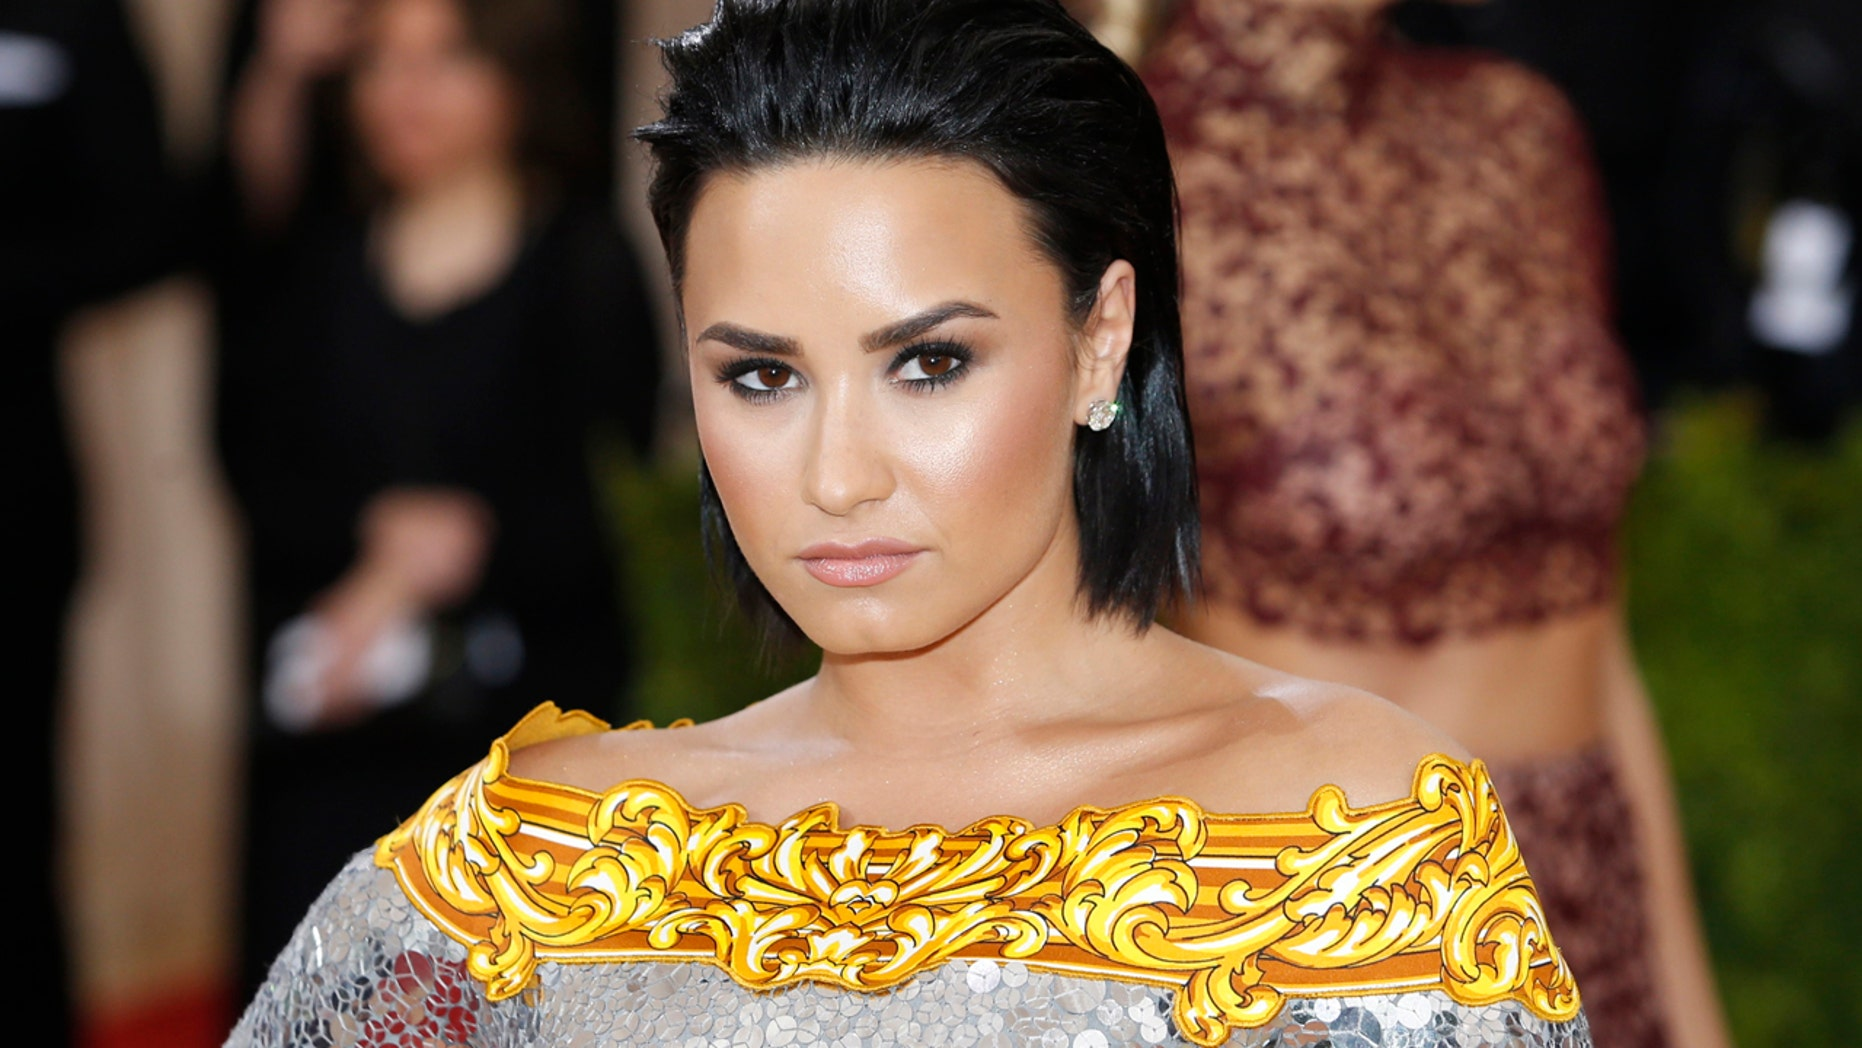 """Singer Demi Lovato arrives at the Metropolitan Museum of Art Costume Institute Gala (Met Gala) to celebrate the opening of """"Manus x Machina: Fashion in an Age of Technology"""" in the Manhattan borough of New York, May 2, 2016."""